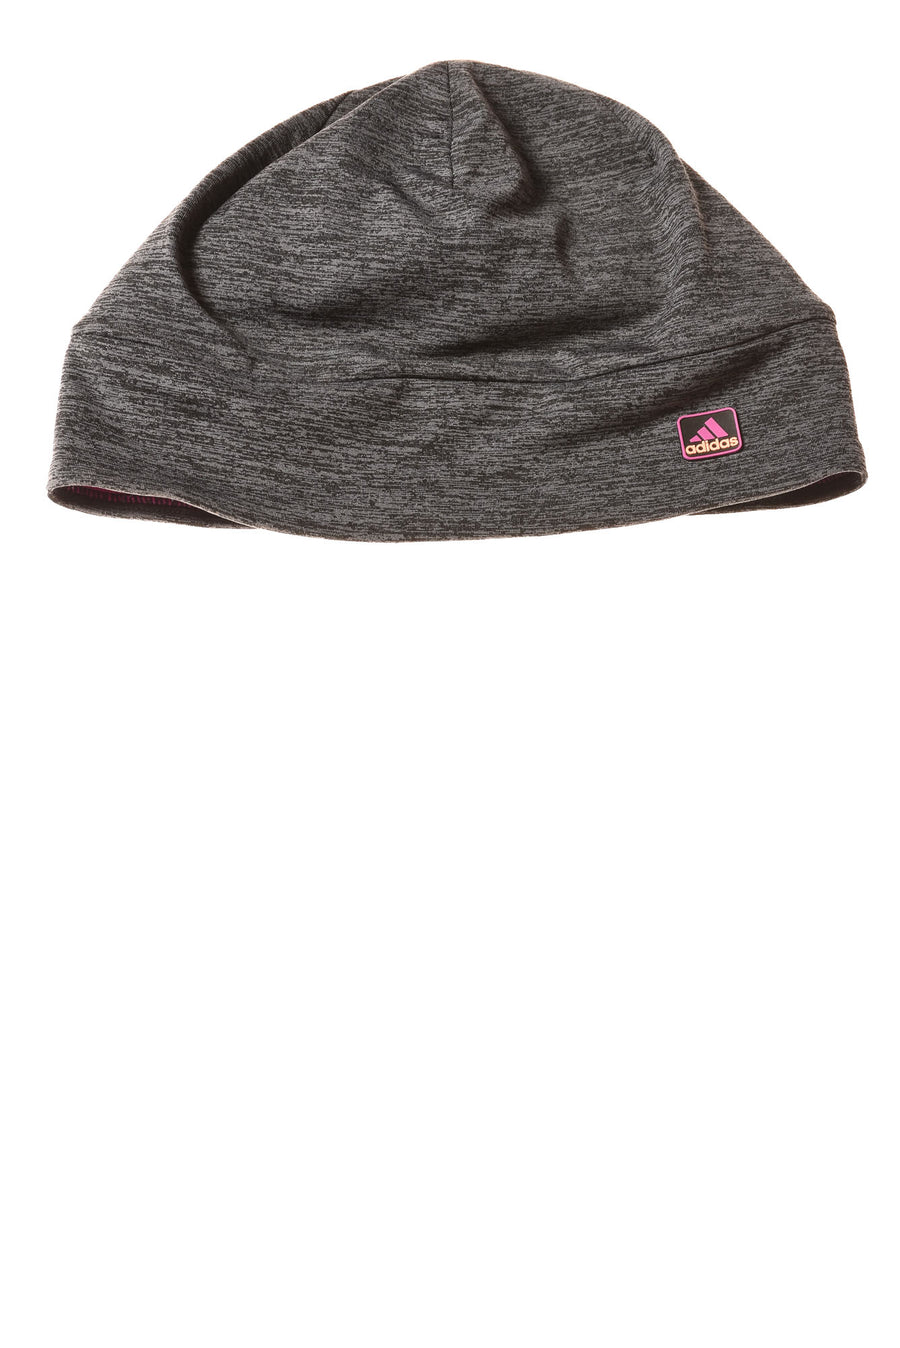 NEW Adidas Women's Hat One Size Gray & Purple